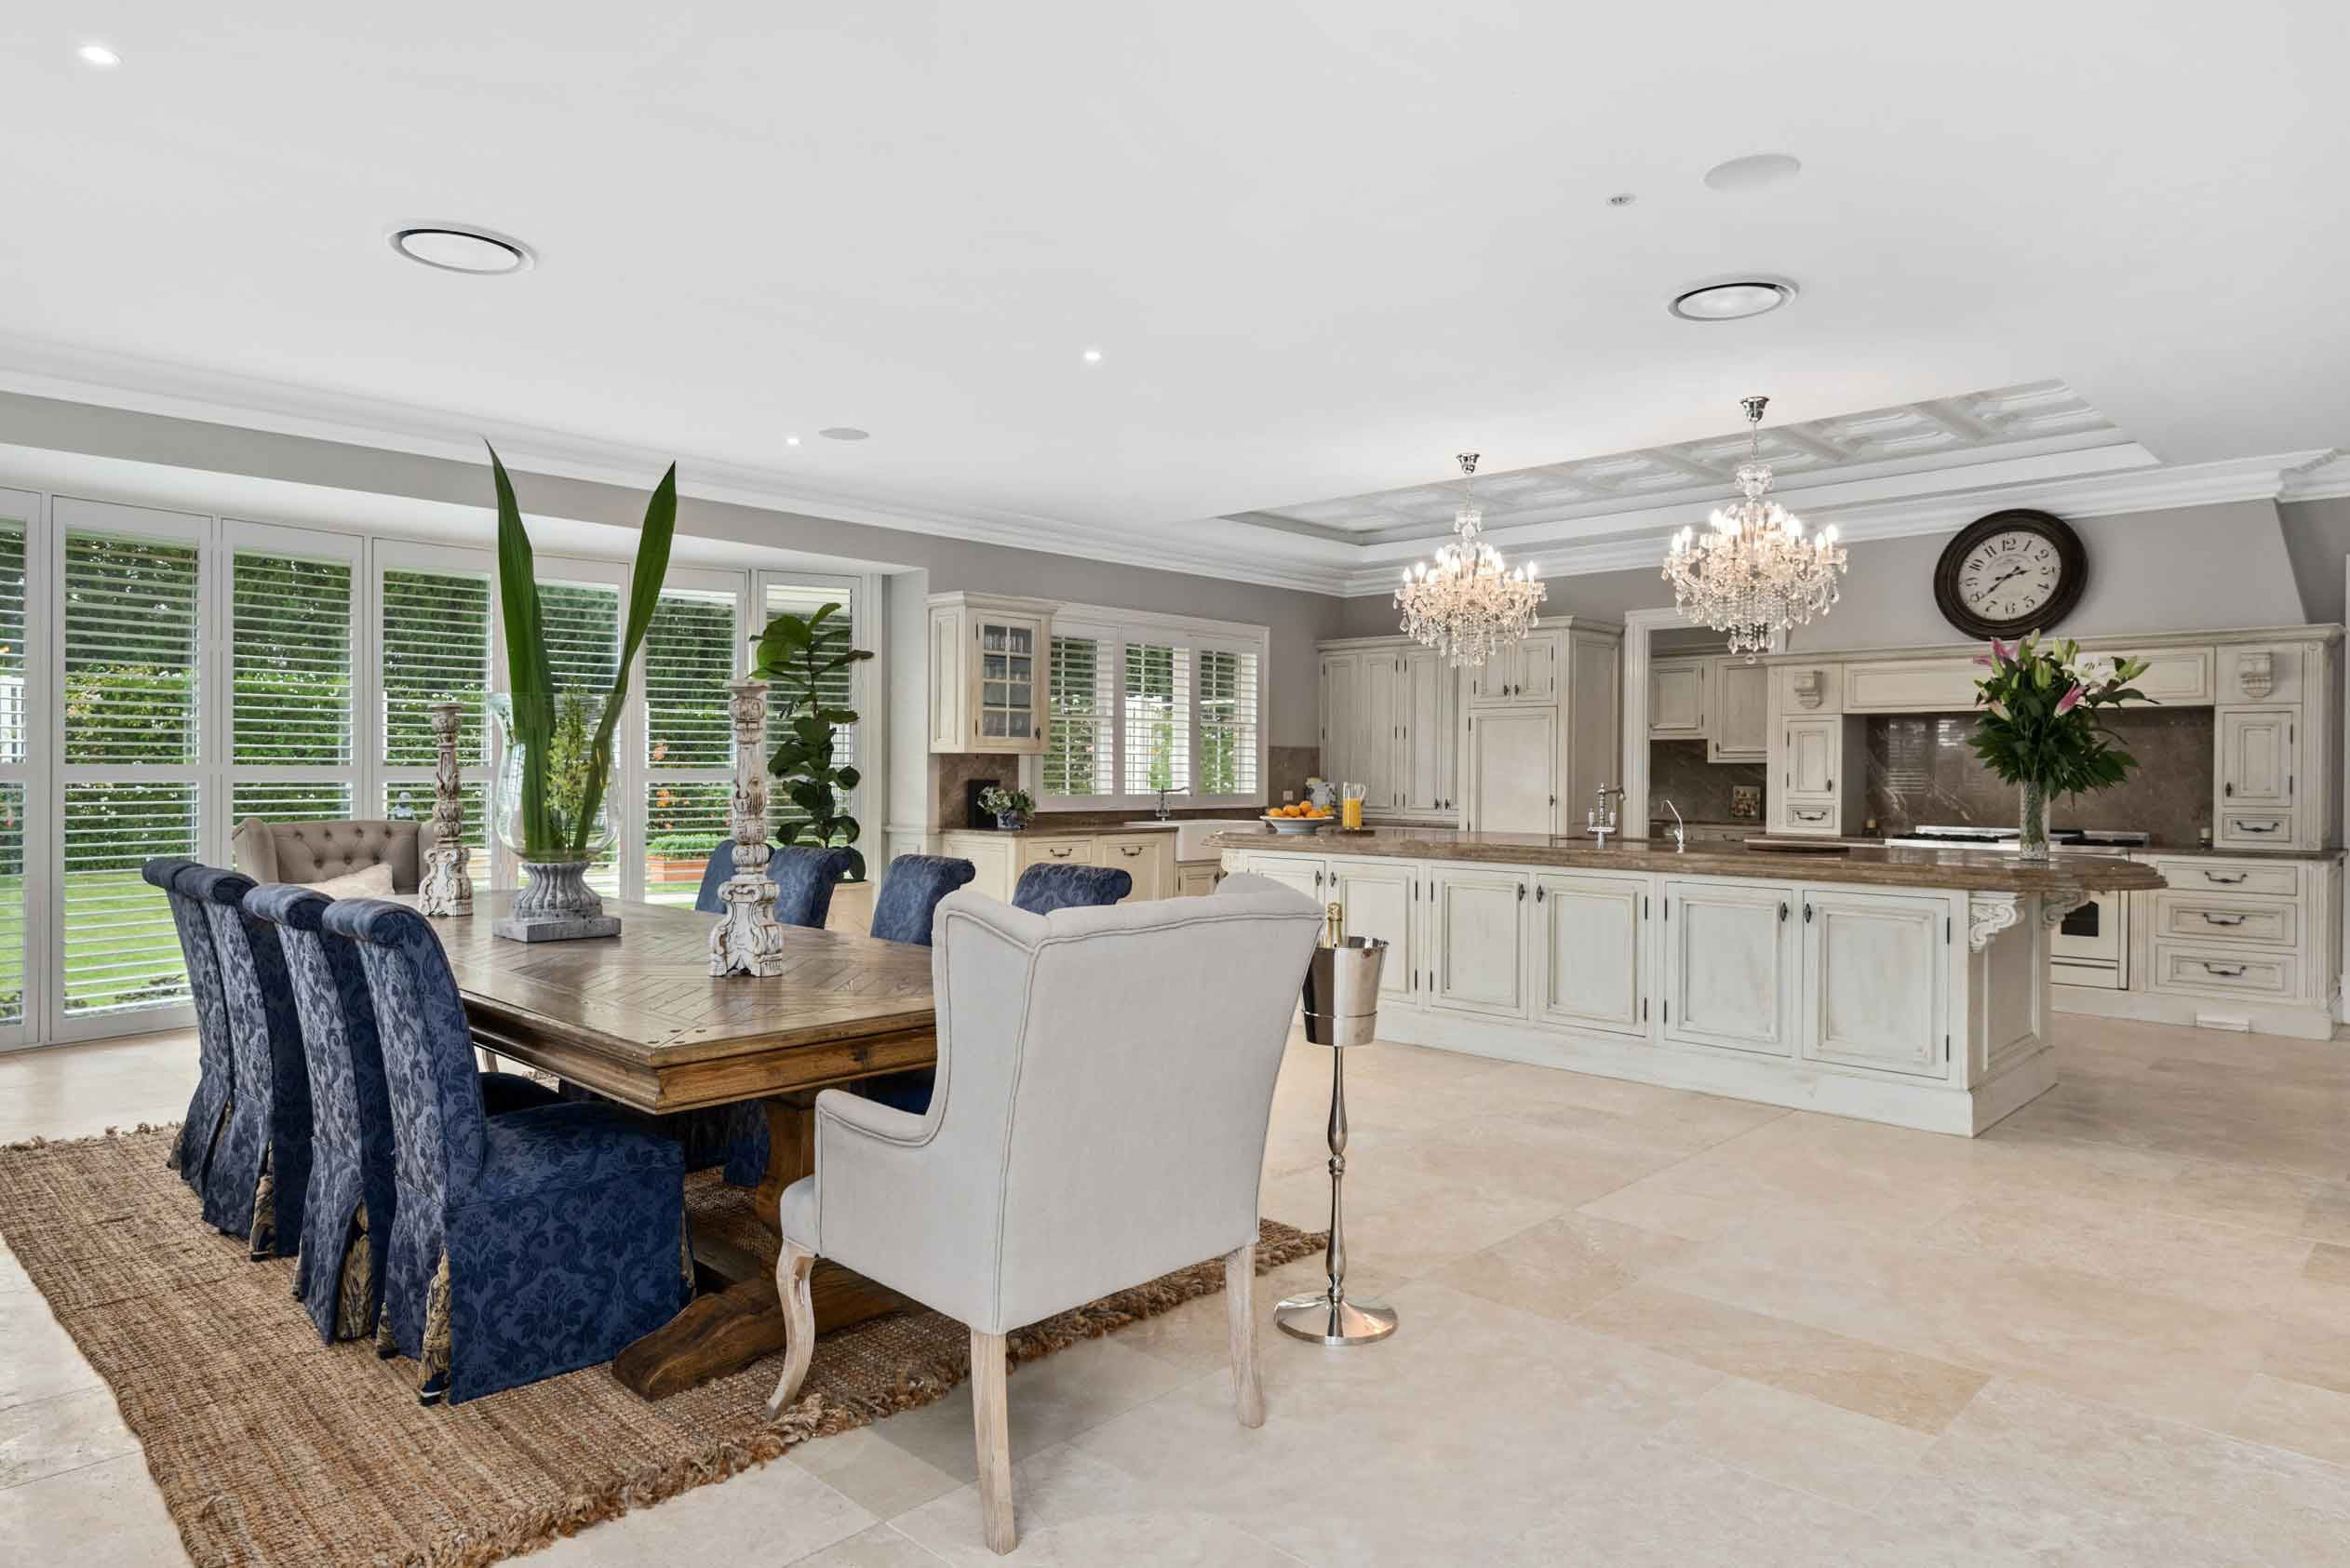 This Sydney home offers seclusion, space, and luxury in equal measure. The beautiful Provençal-style kitchen has top-drawer appliances and refined touches, including two crystal chandeliers.